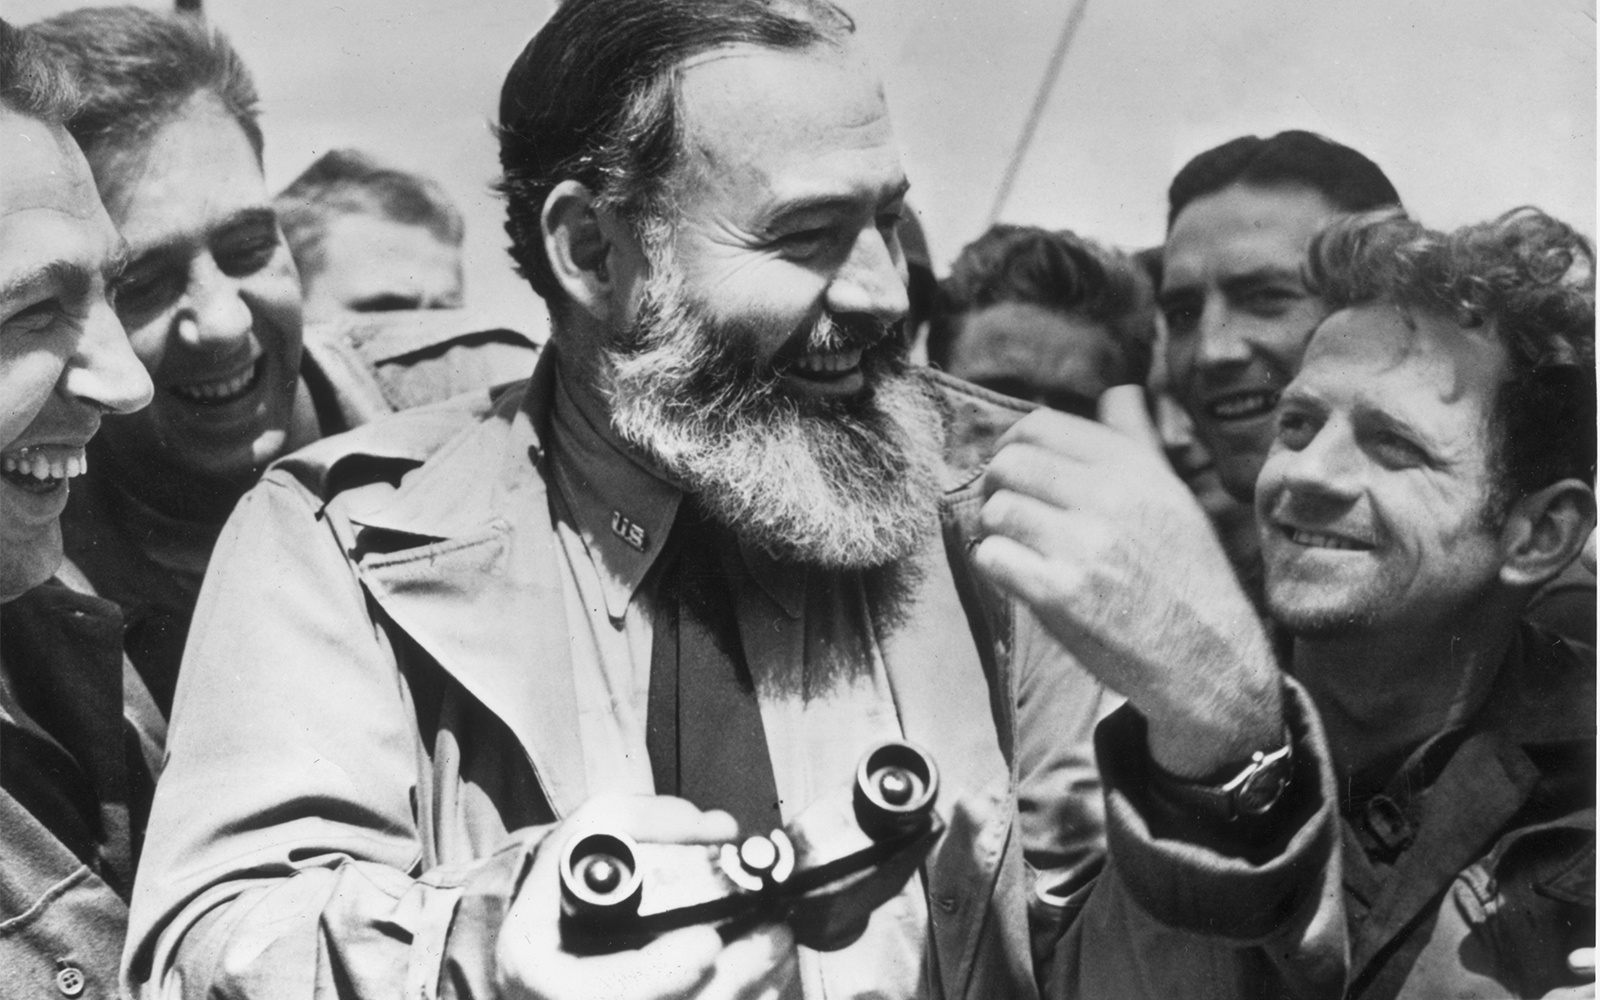 1944:  American writer Ernest Hemingway (1899 - 1961) travelling with US soldiers, in his capacity as war correspondent,  on their way to Normandy for the D-Day landings.  (Photo by Central Press/Getty Images)